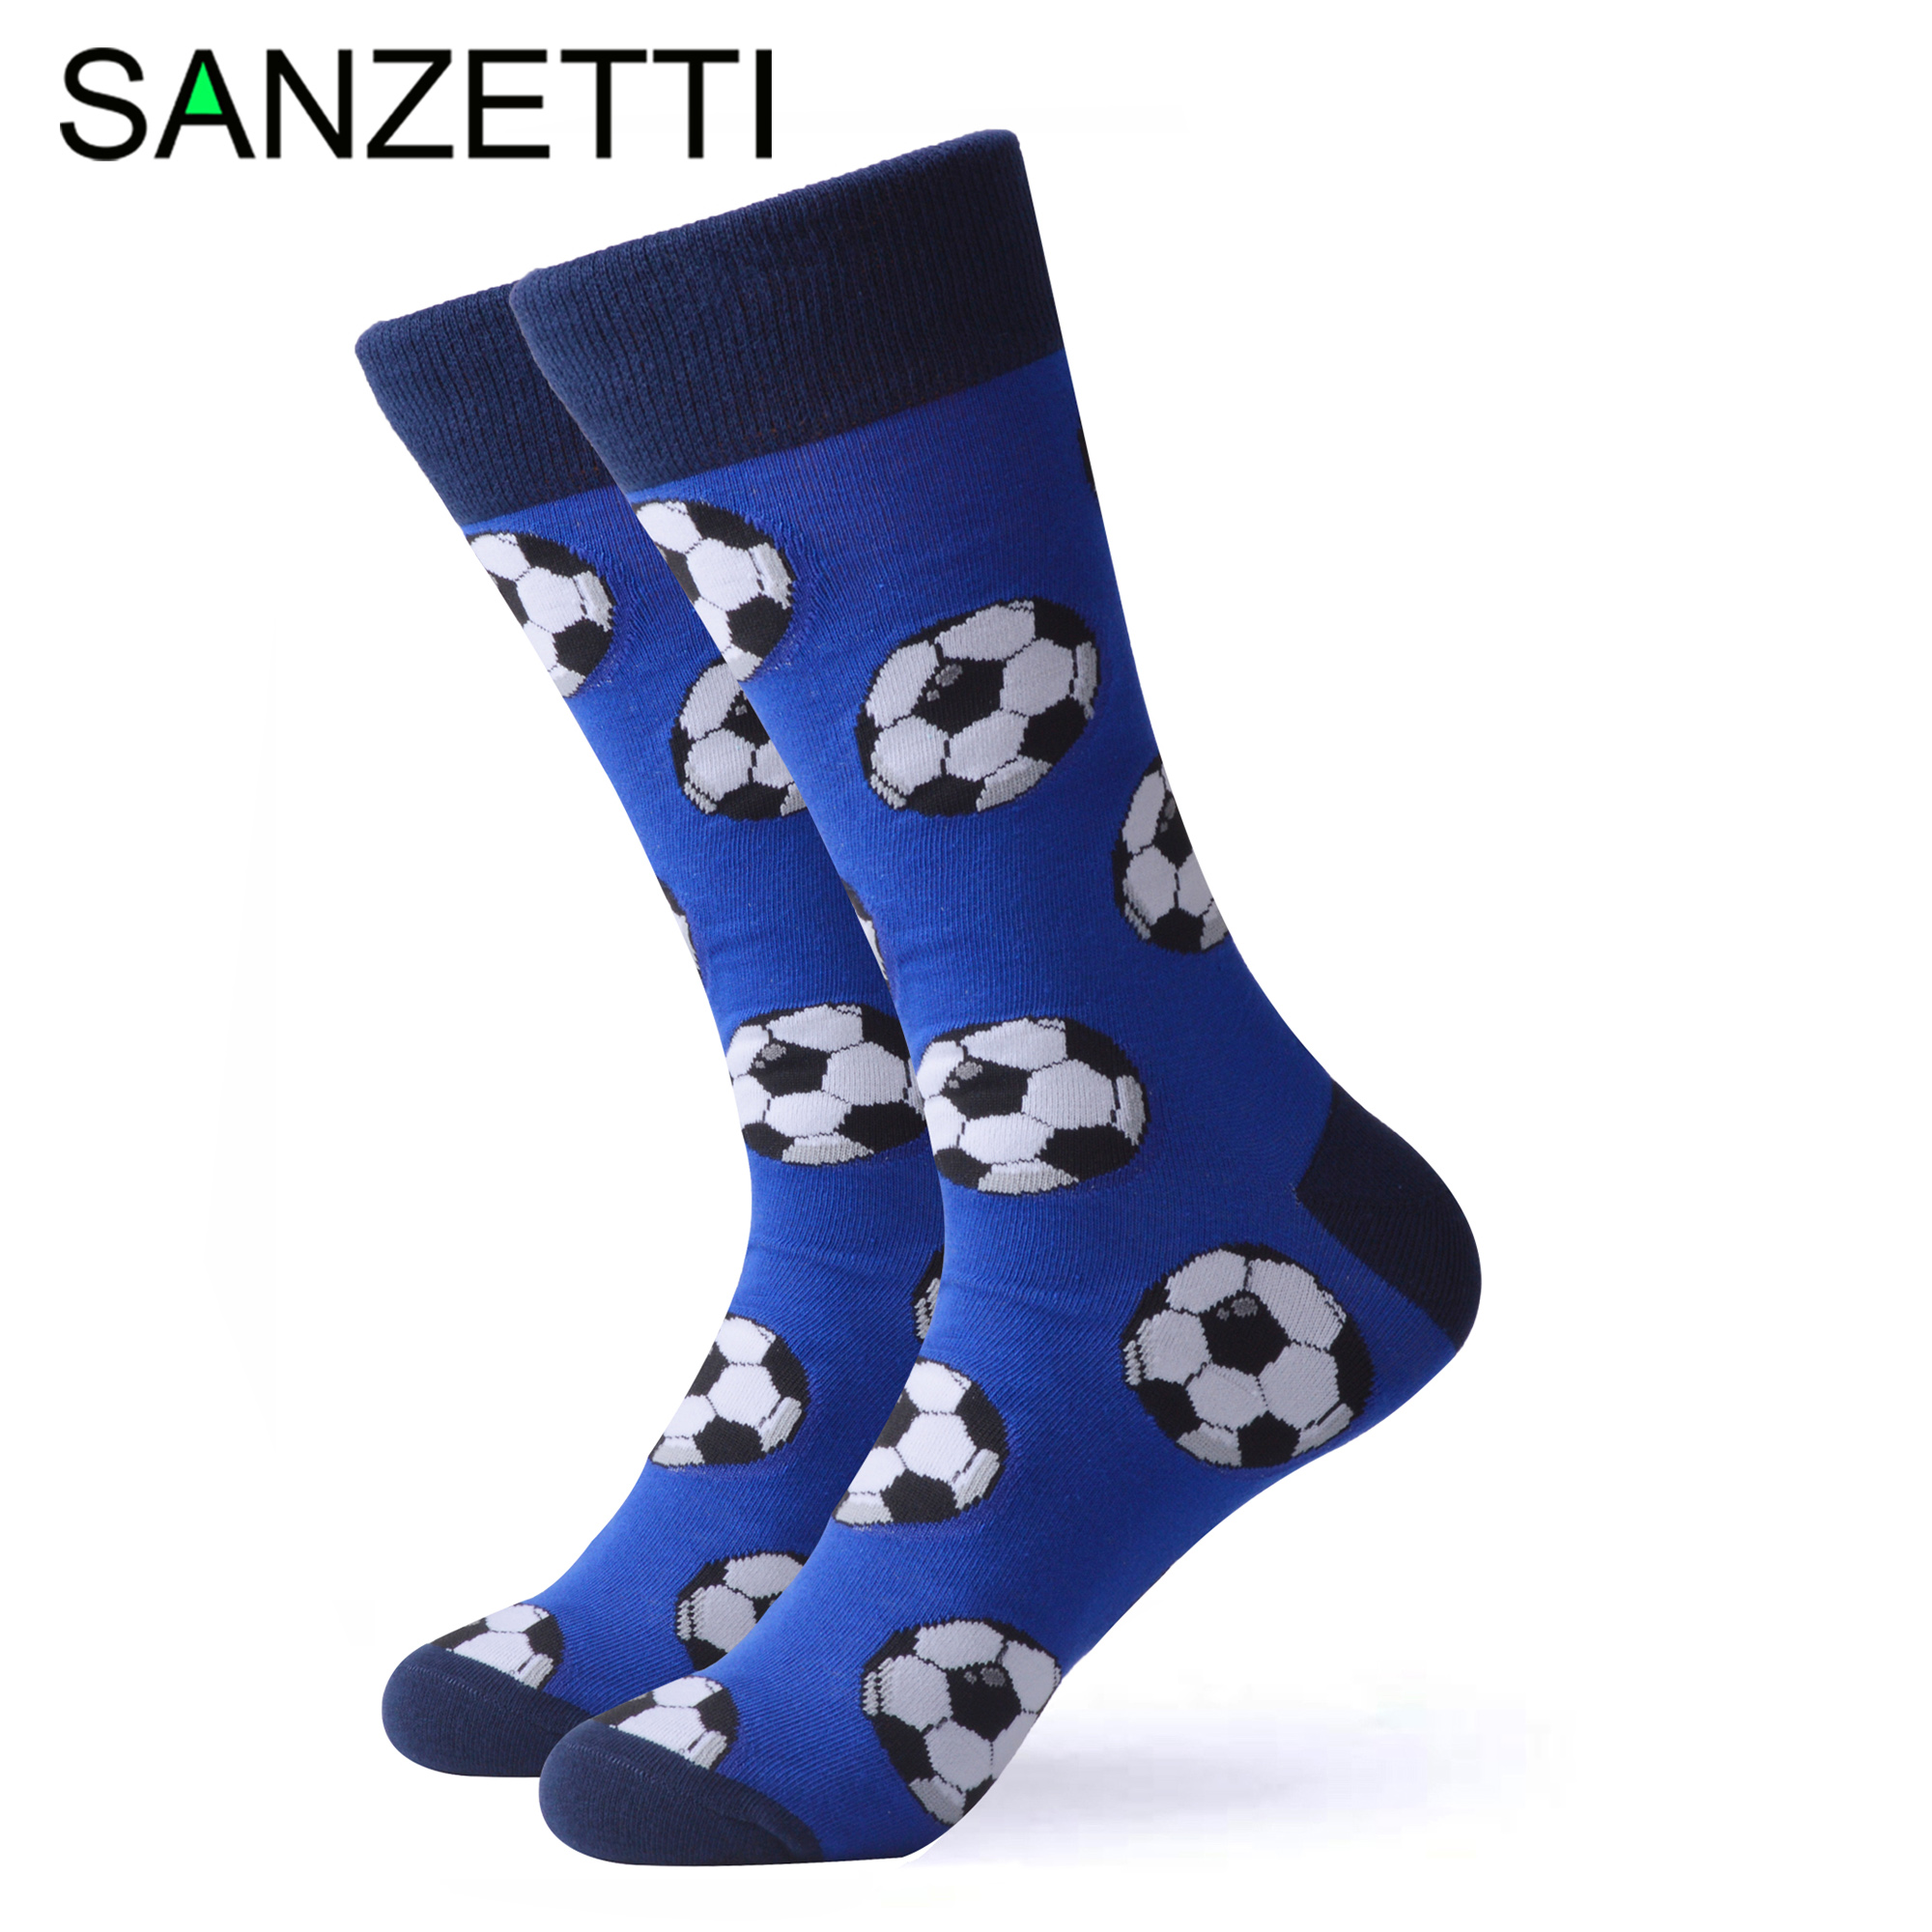 SANZETTI 1 Pair Happy Socks High Quality Men's Colorful Comfortable Combed Cotton Football Golf Novelty Gift Wedding Dress Socks